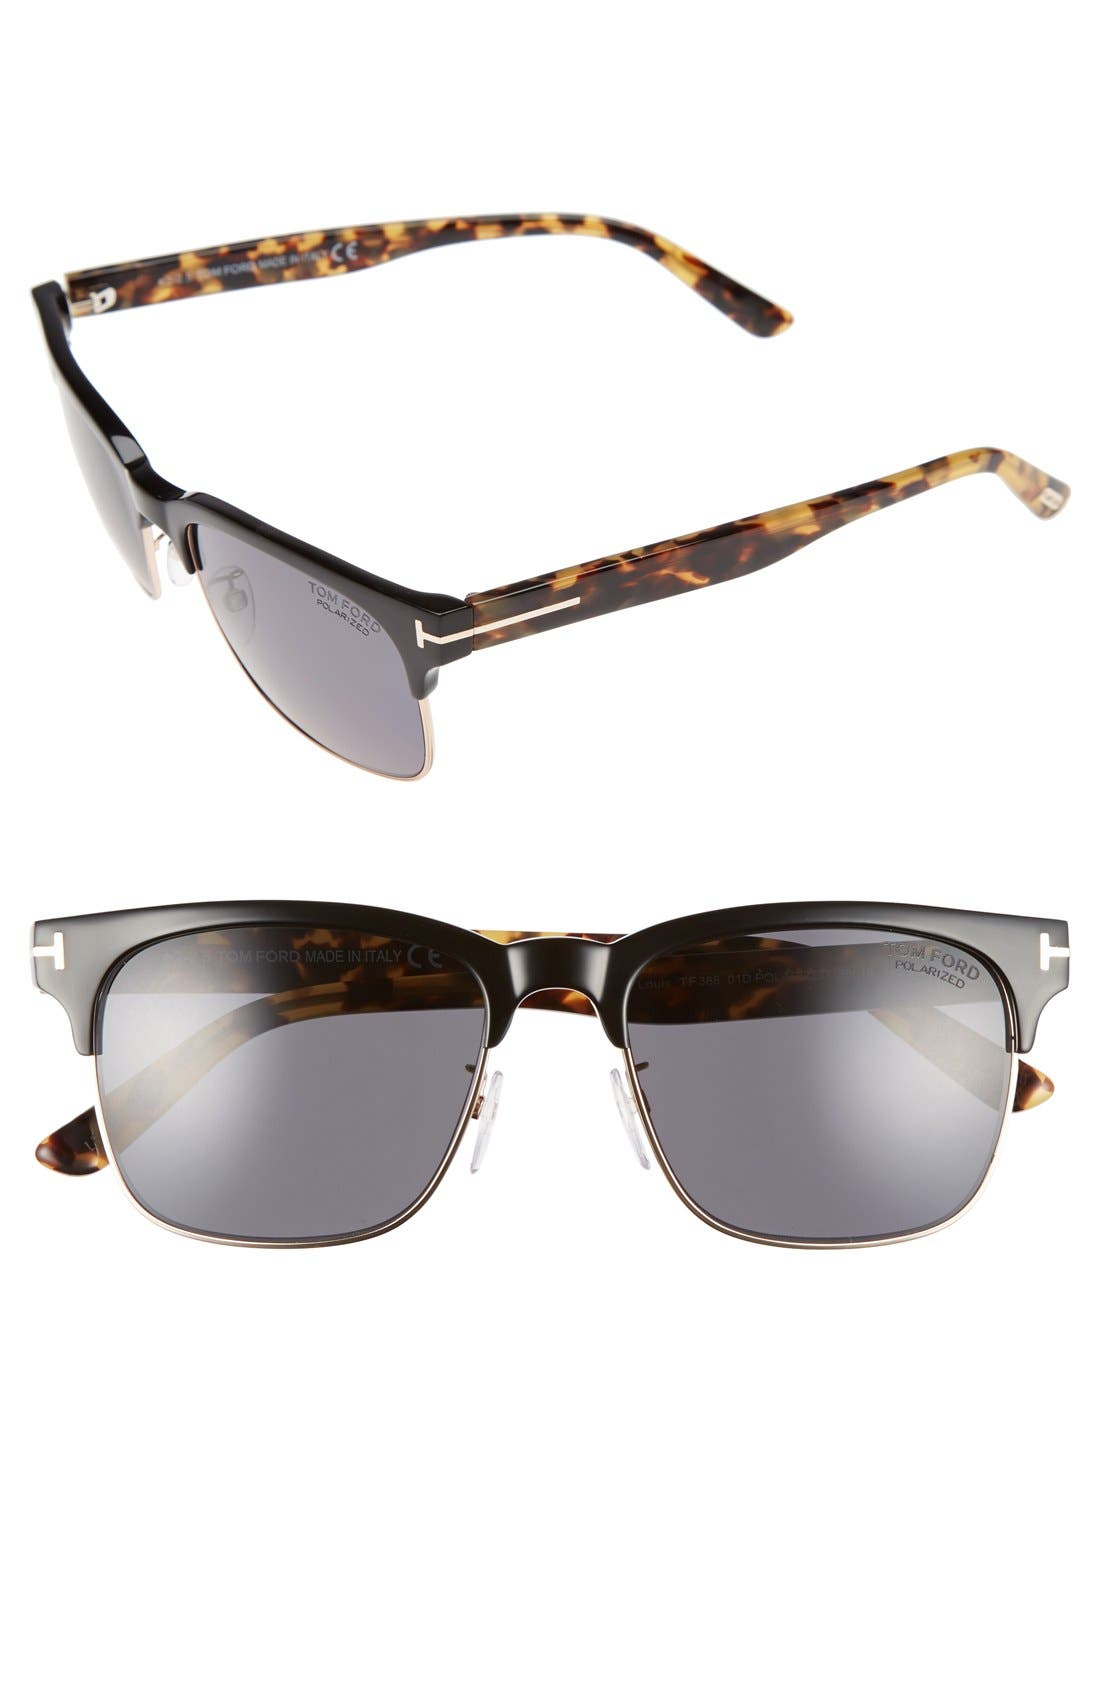 Main Image - Tom Ford 'Louis' 55mm Polarized Sunglasses